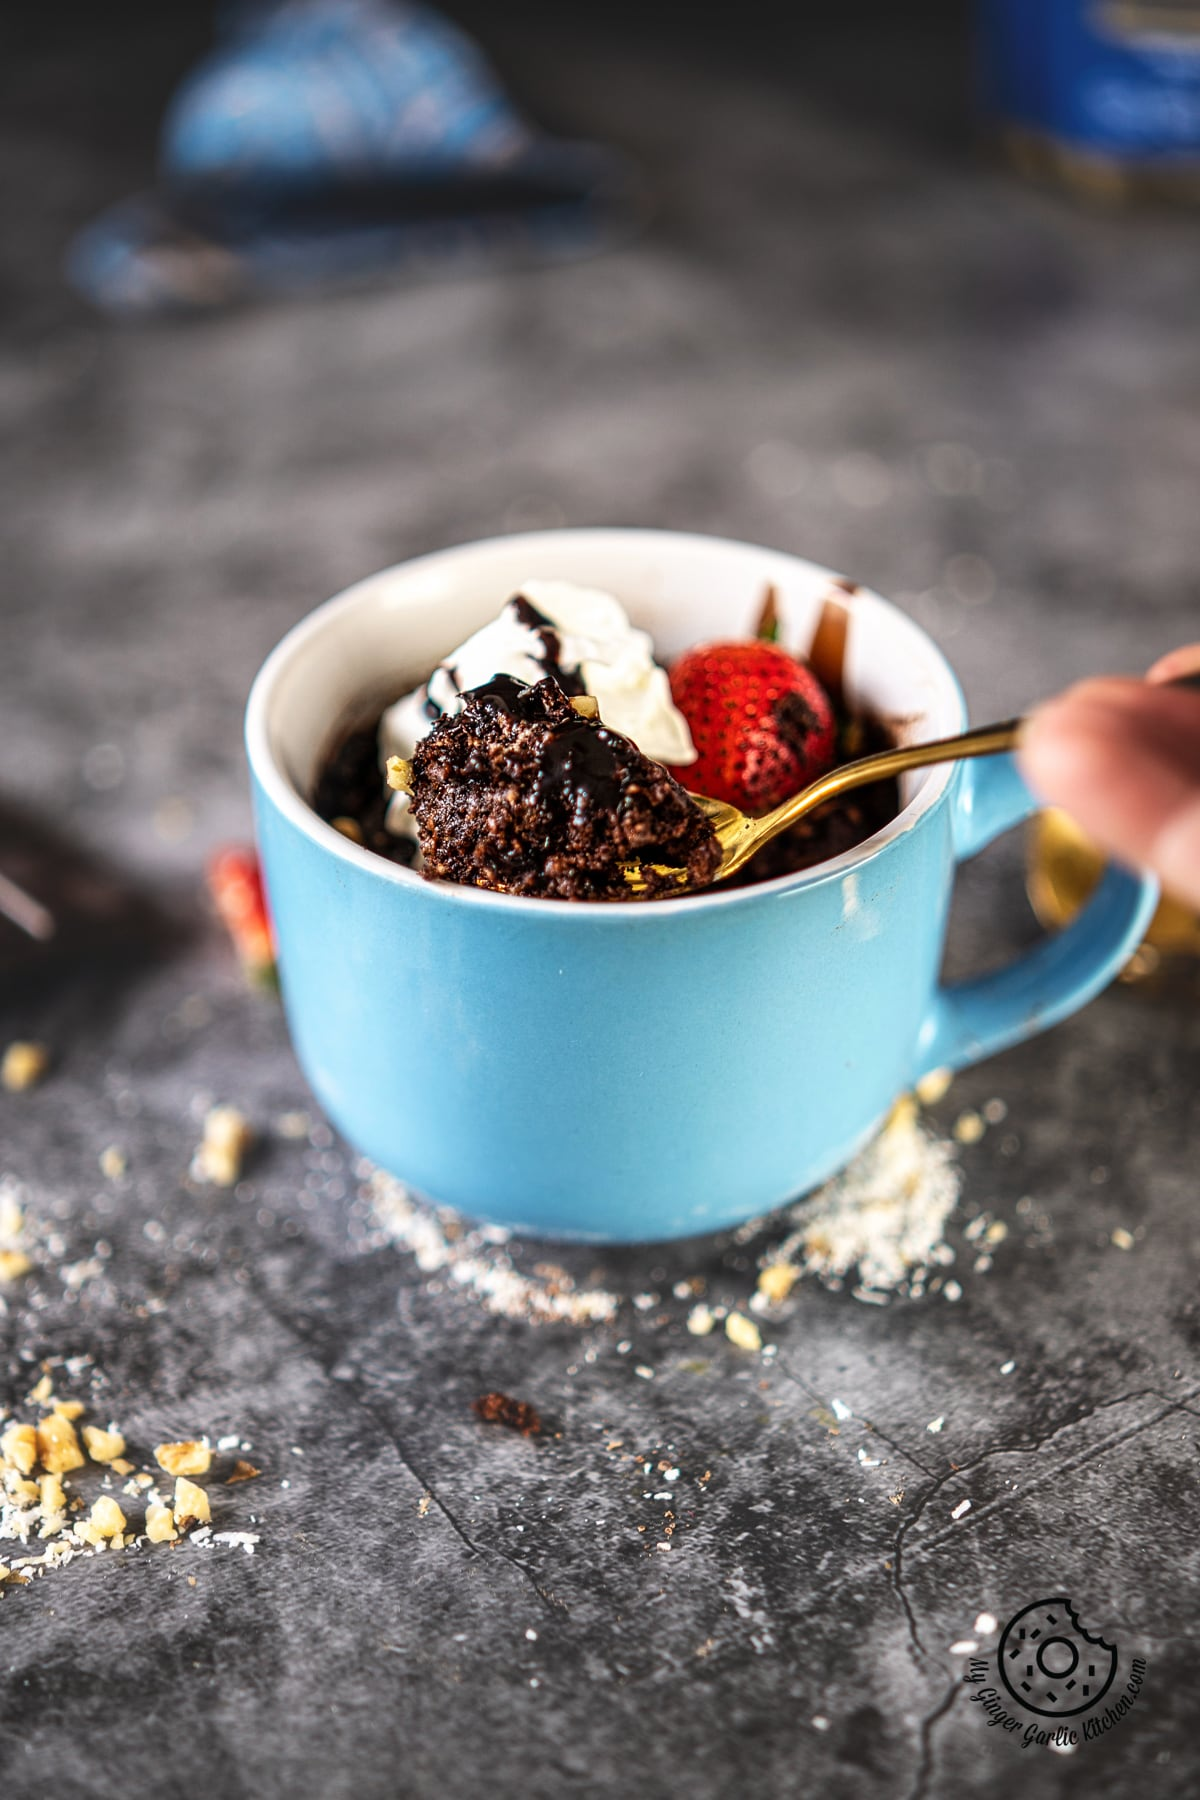 a hand holding a golden spoon over a chocolate brownie mug